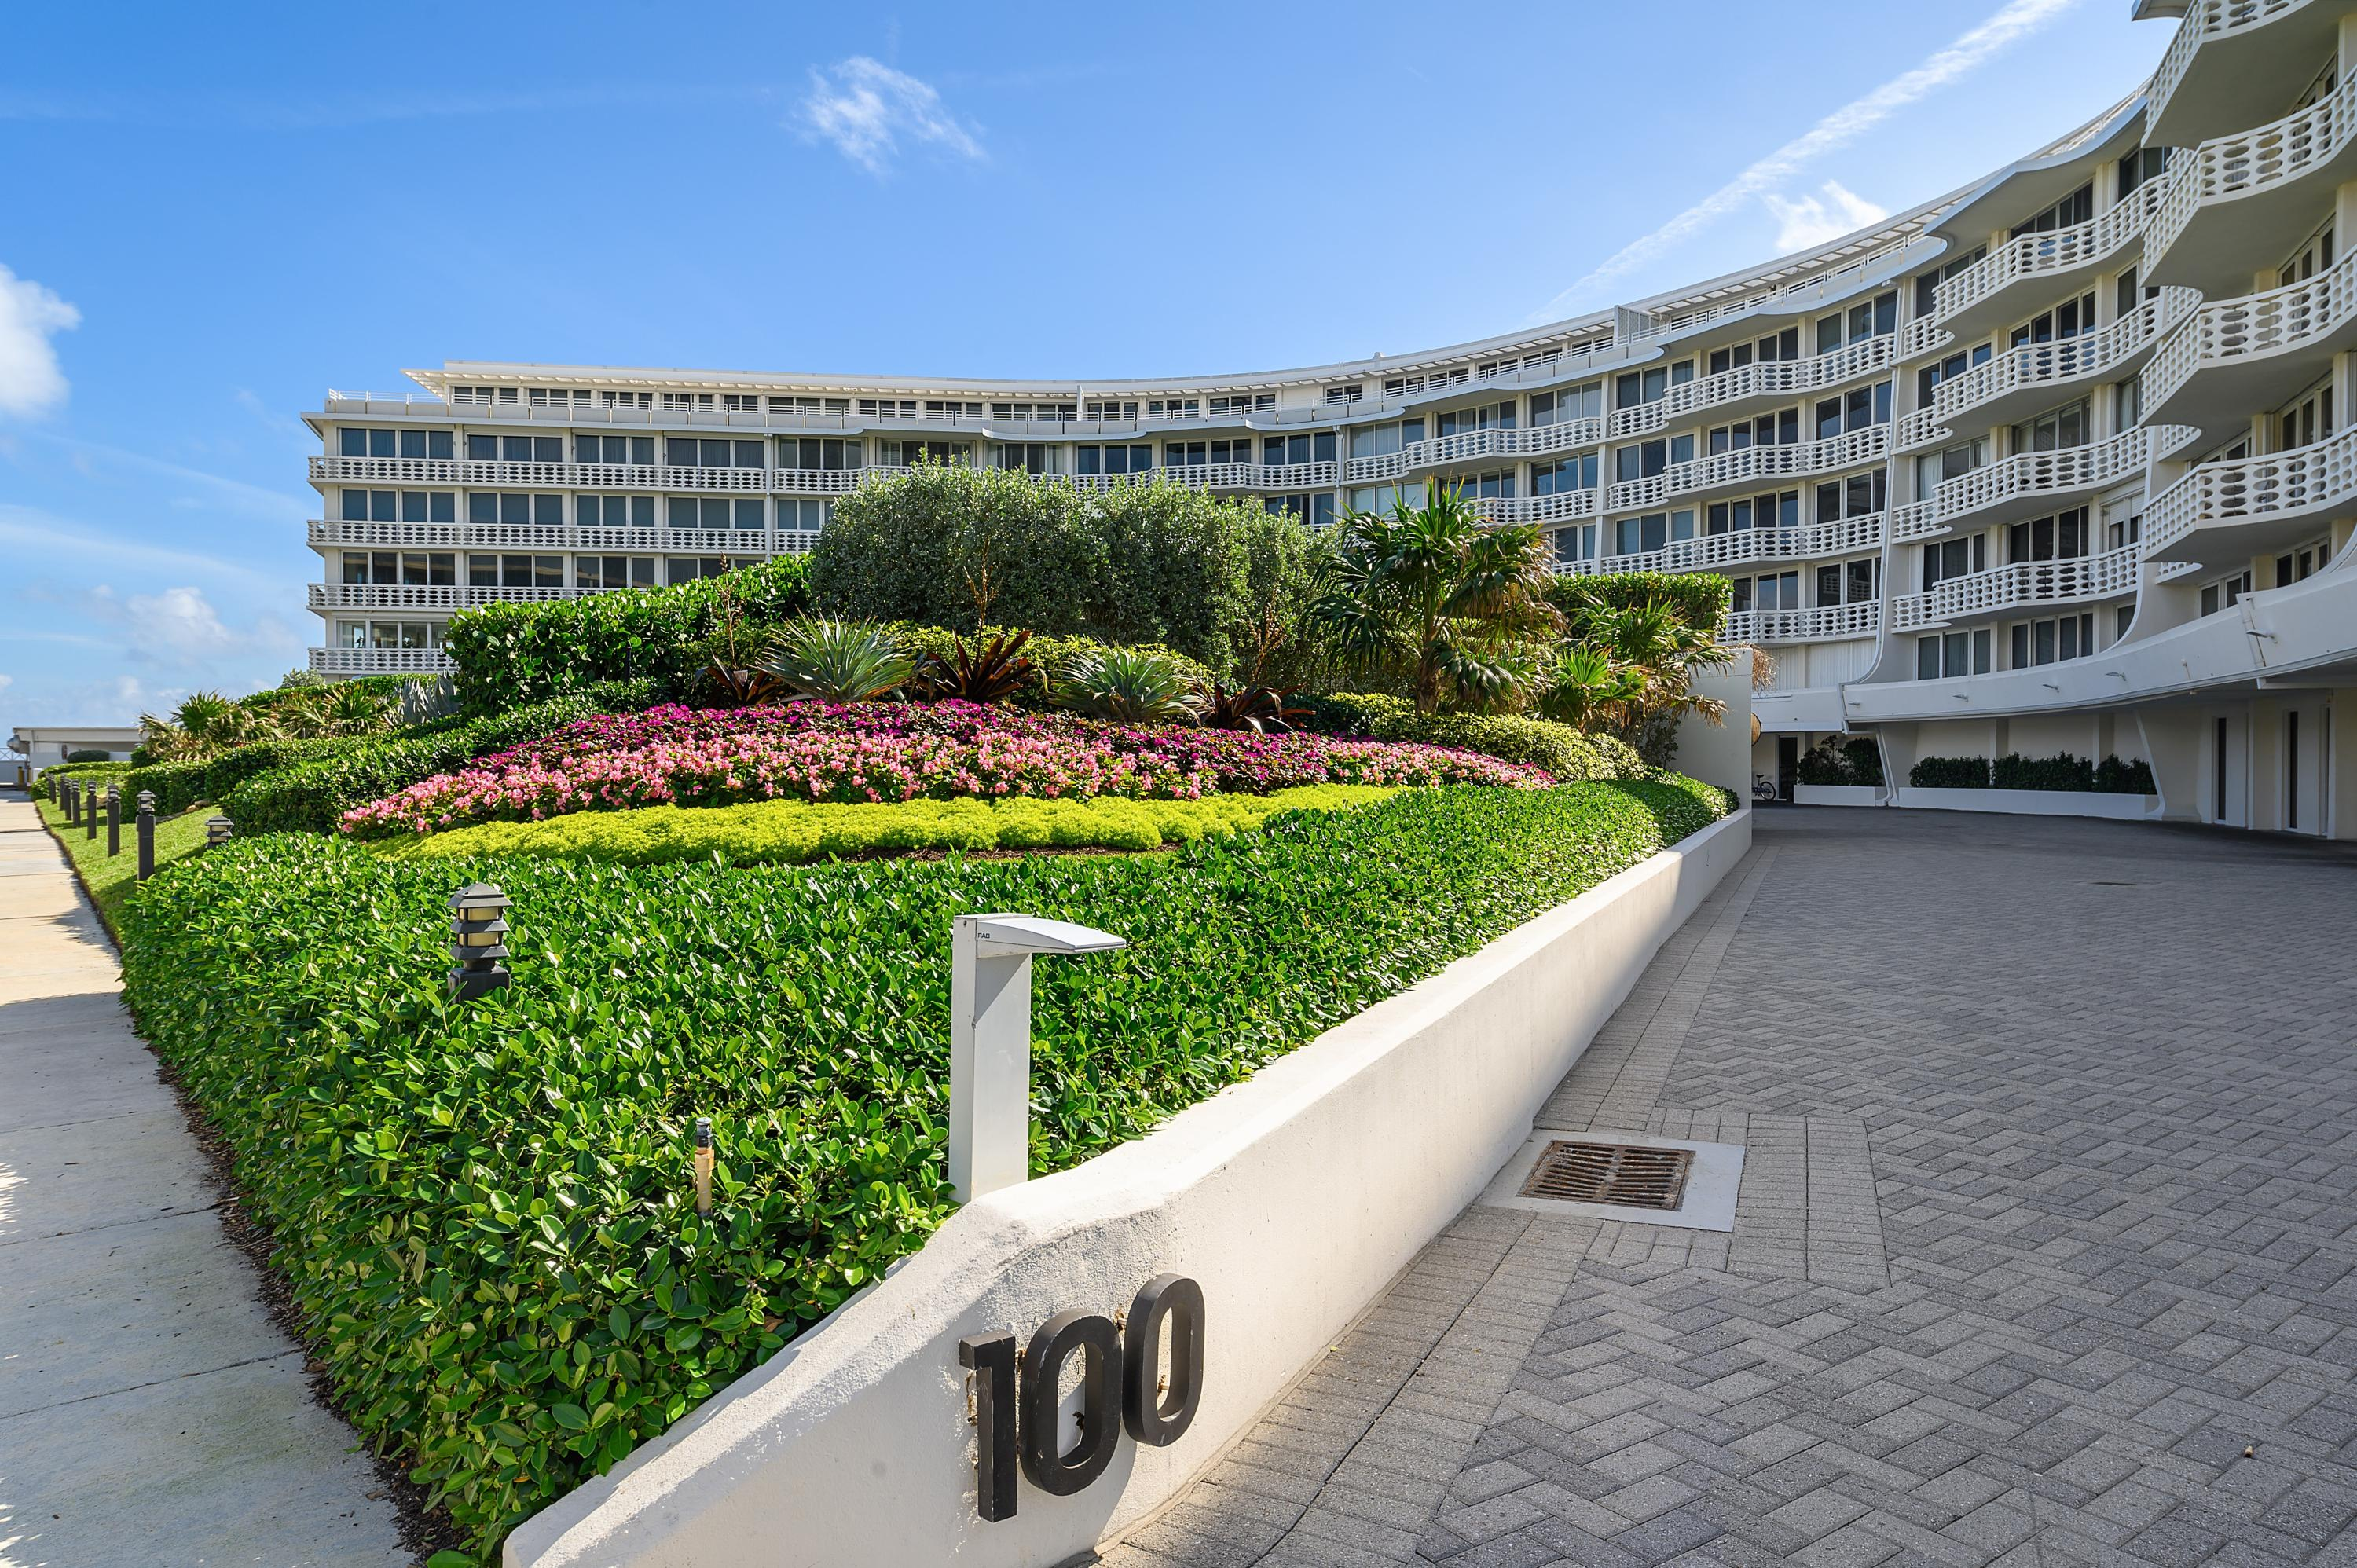 Beautiful 2 bedroom/2bath condo at The Sun and Surf offering garden views with spacious terrace.  Walking distance to many shops and restaurants in Palm Beach.